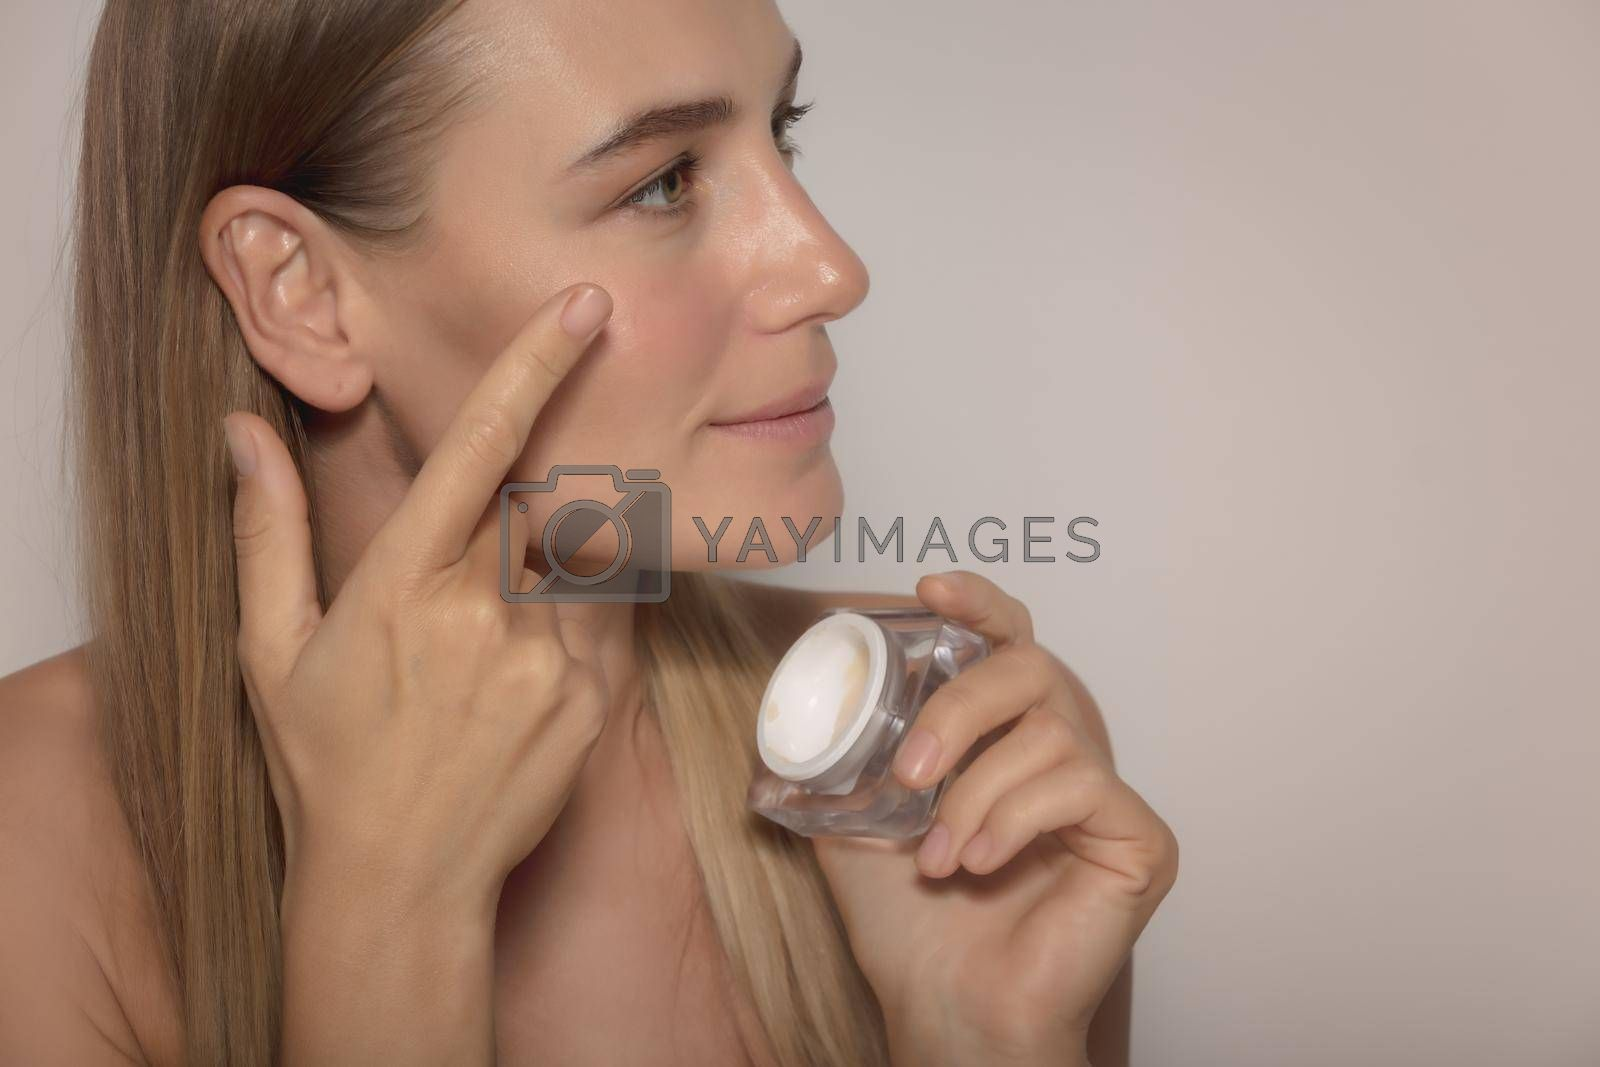 Portrait of a Pretty Woman Isolated on Beige Background Applying Face Cream. Young and Fresh Face. Beauty and Skin Care Routine.